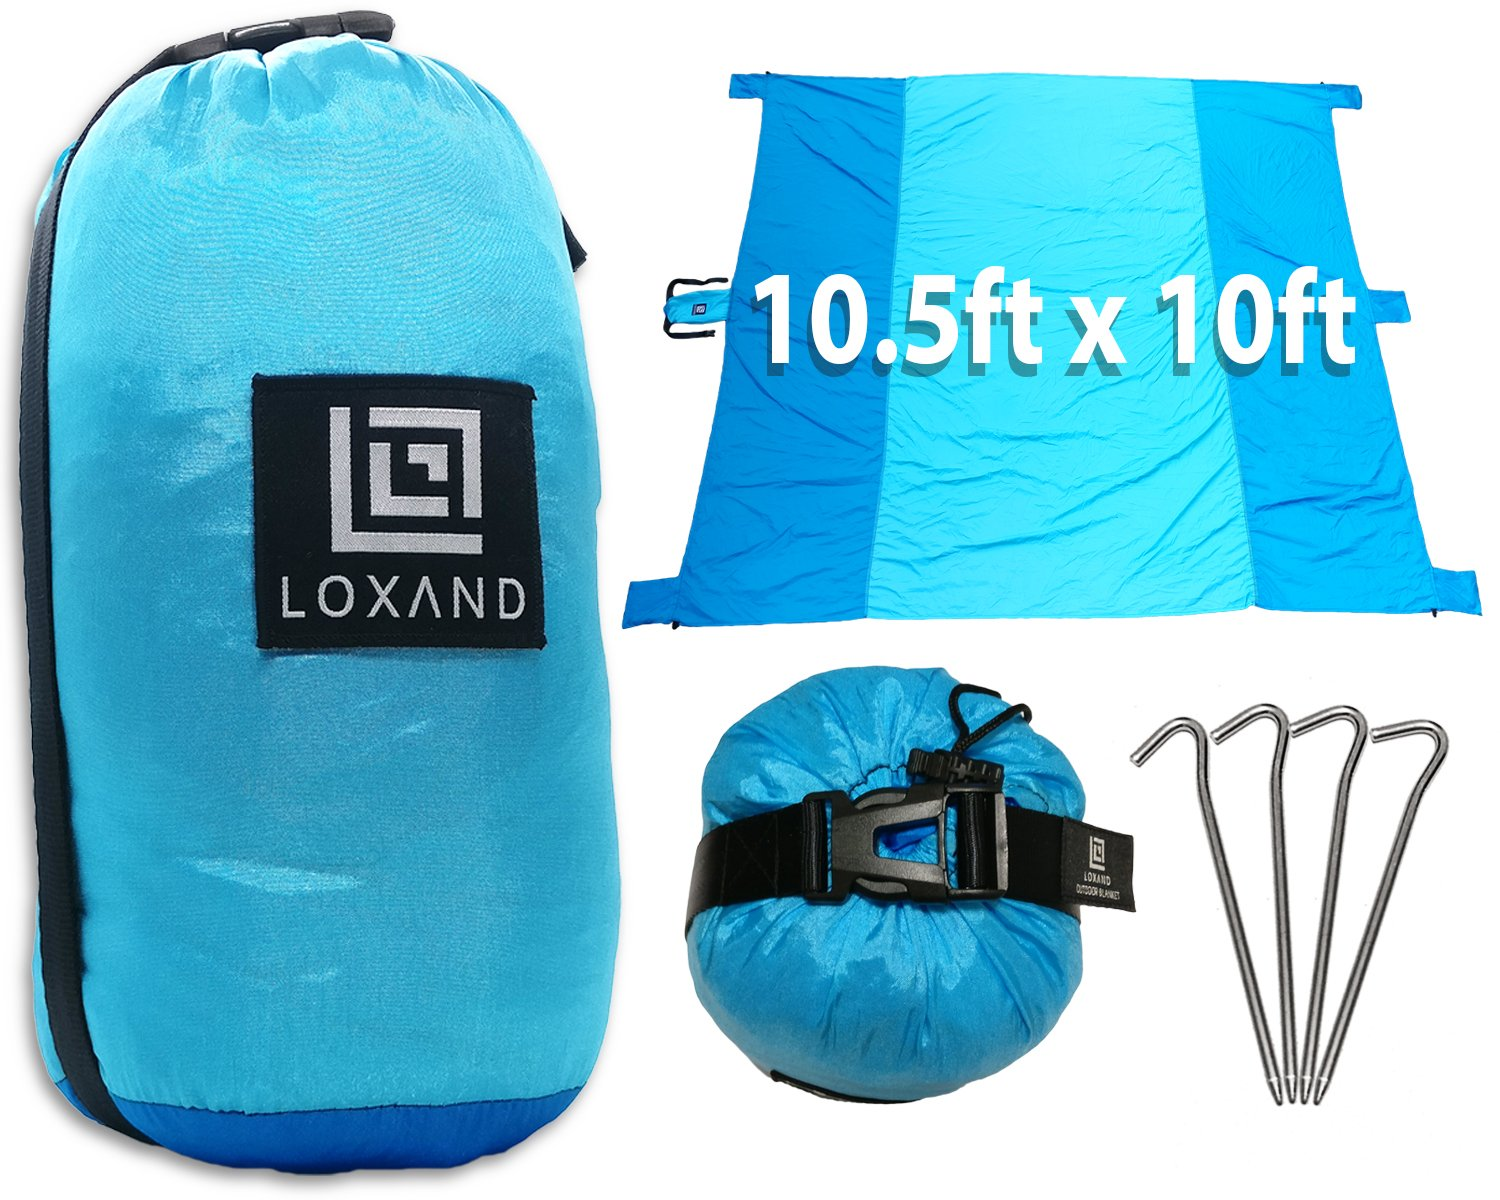 loxand Large Beach Blanket/アウトドアブランケット – 大きな10.5 ' X 10 ' – Perfect forビーチ、旅行、ピクニック、キャンプ、祭 – Sand Proof、丈夫、コンパクト、洗濯可能+ 5 Sandポケット& 4メタルStakes B075HLZW9Q